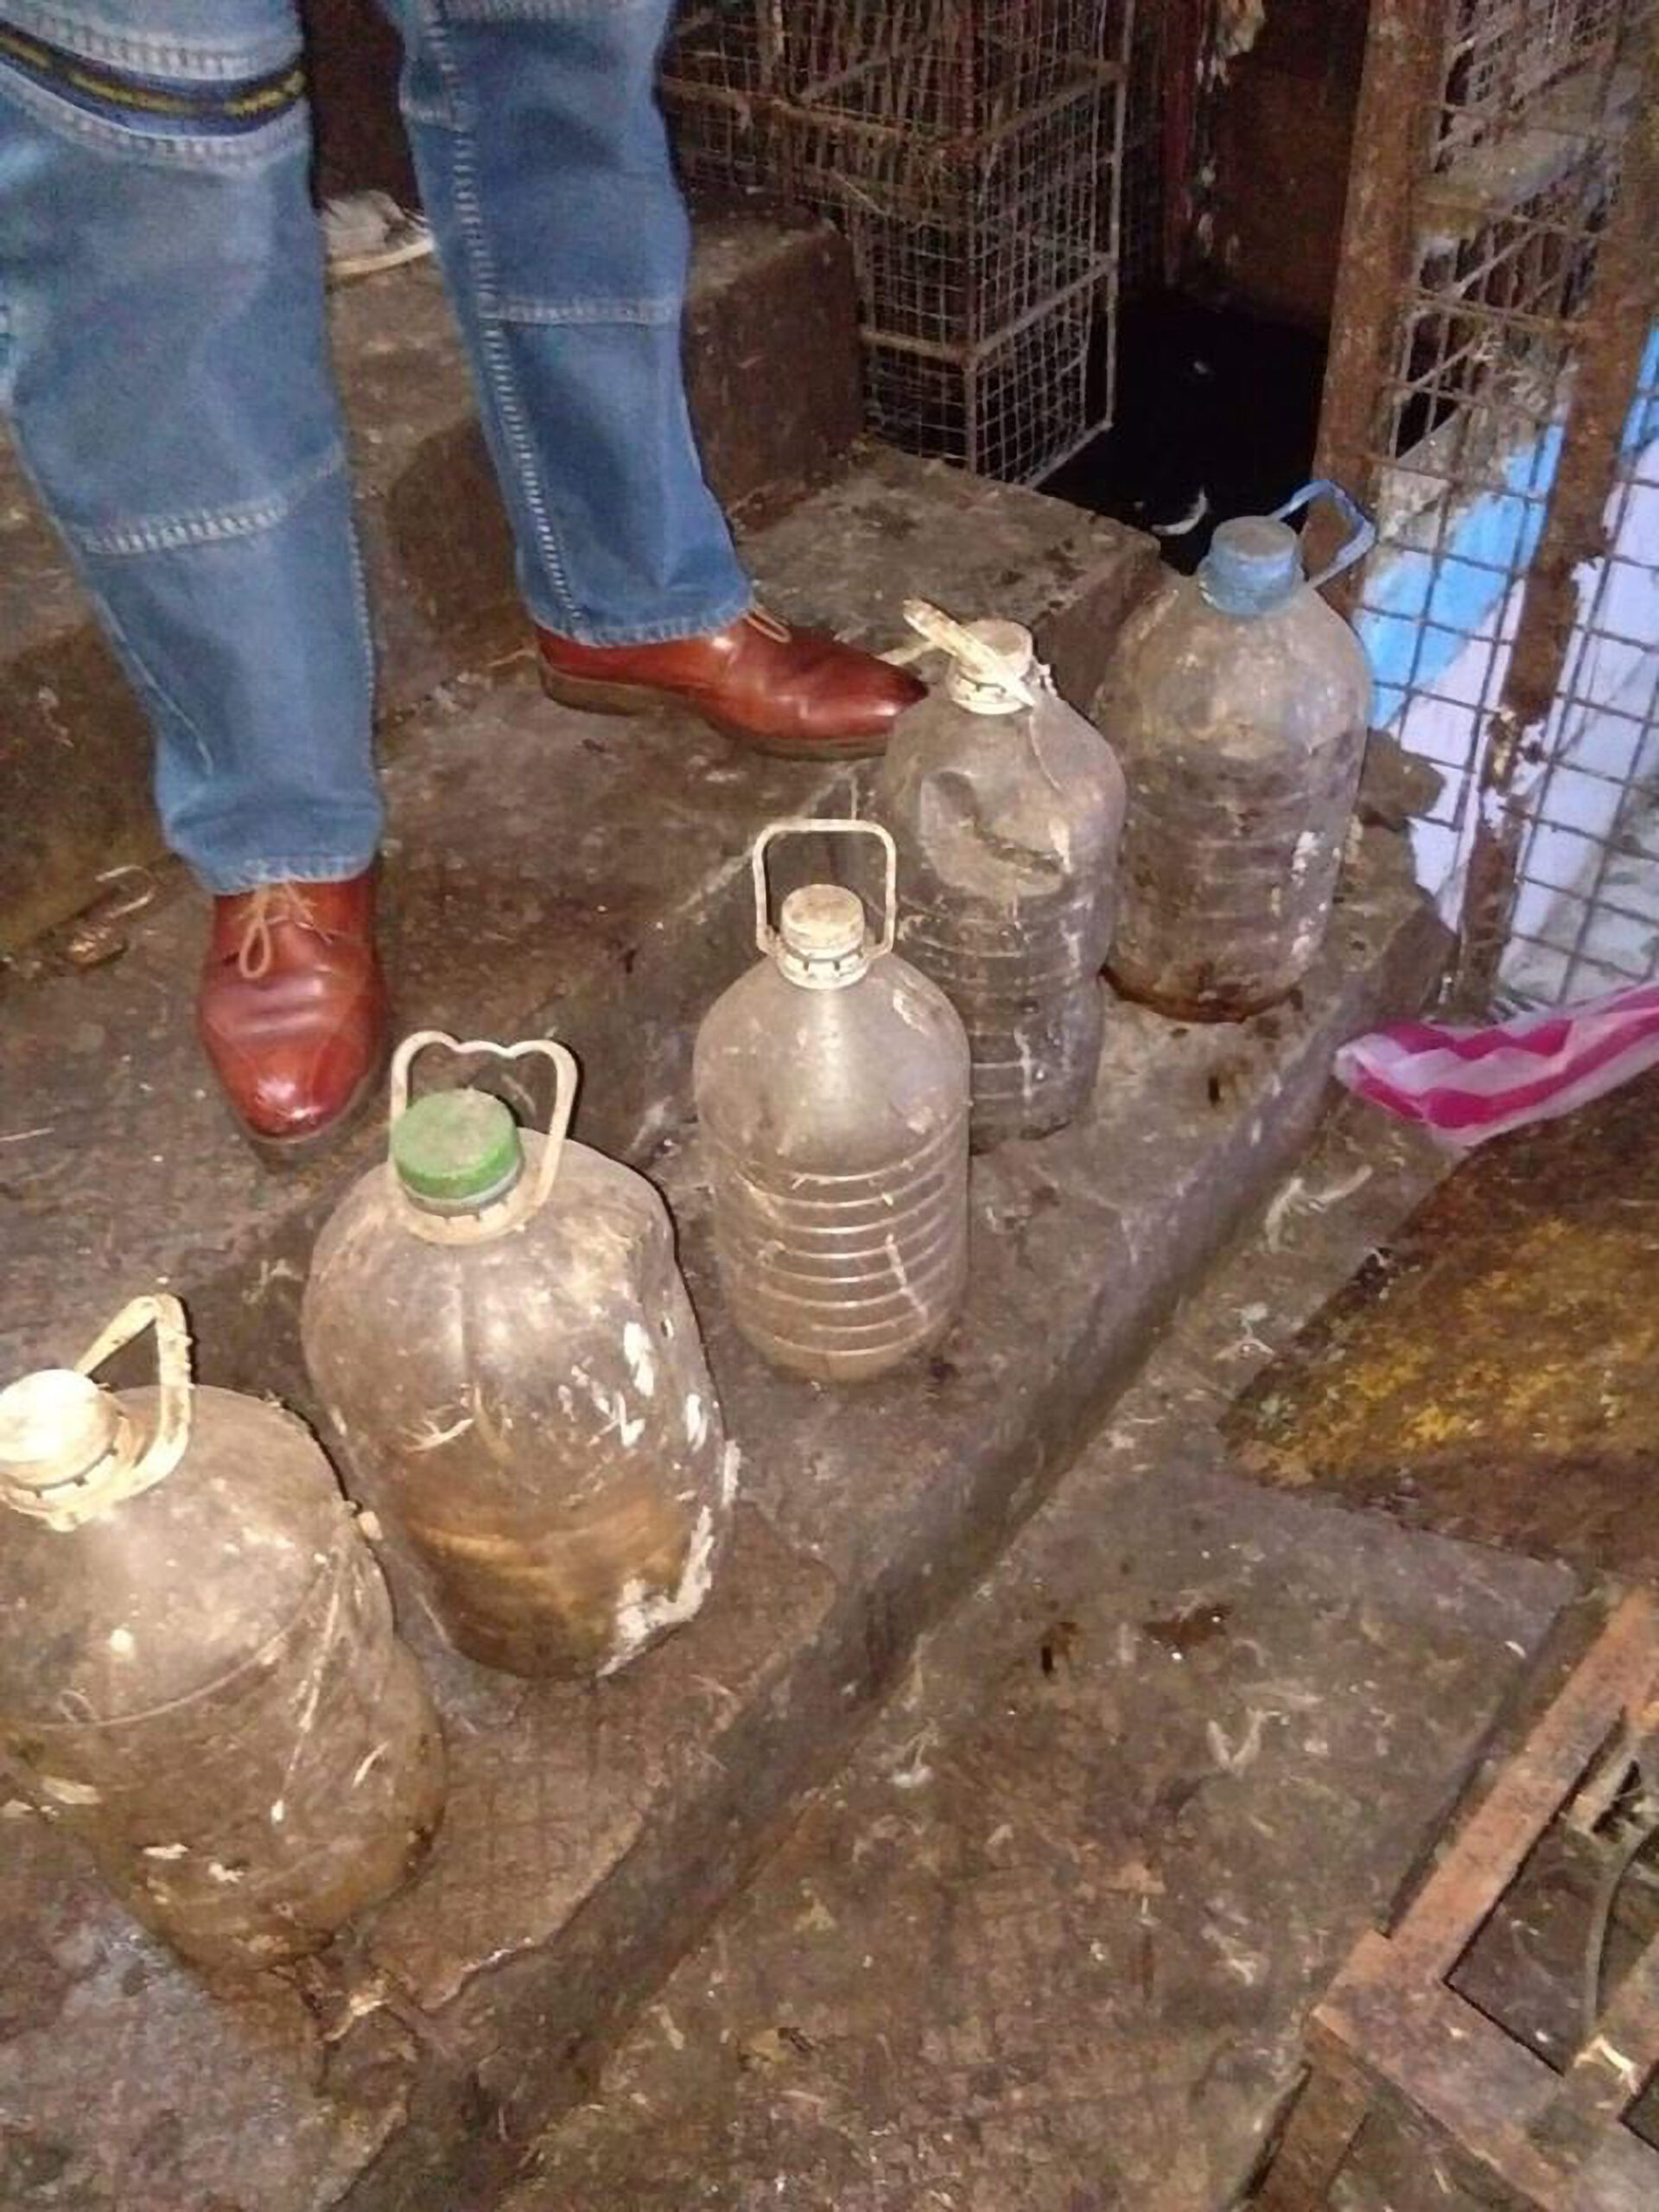 Hissing tips off inspector to 5 cobras in water bottles